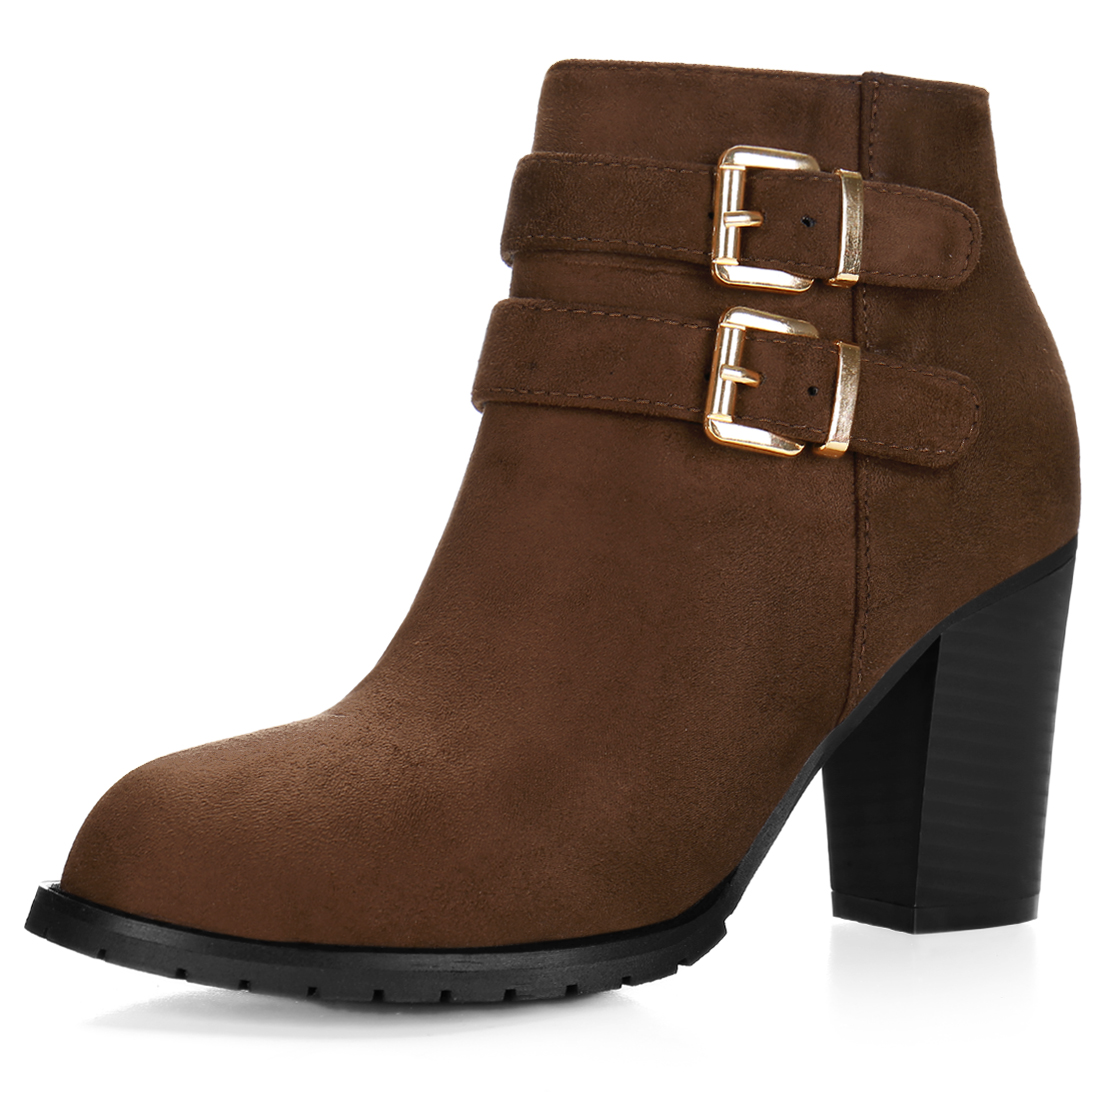 Women Round Toe Buckled Straps Chunky Heel Ankle Booties Coffee US 7.5